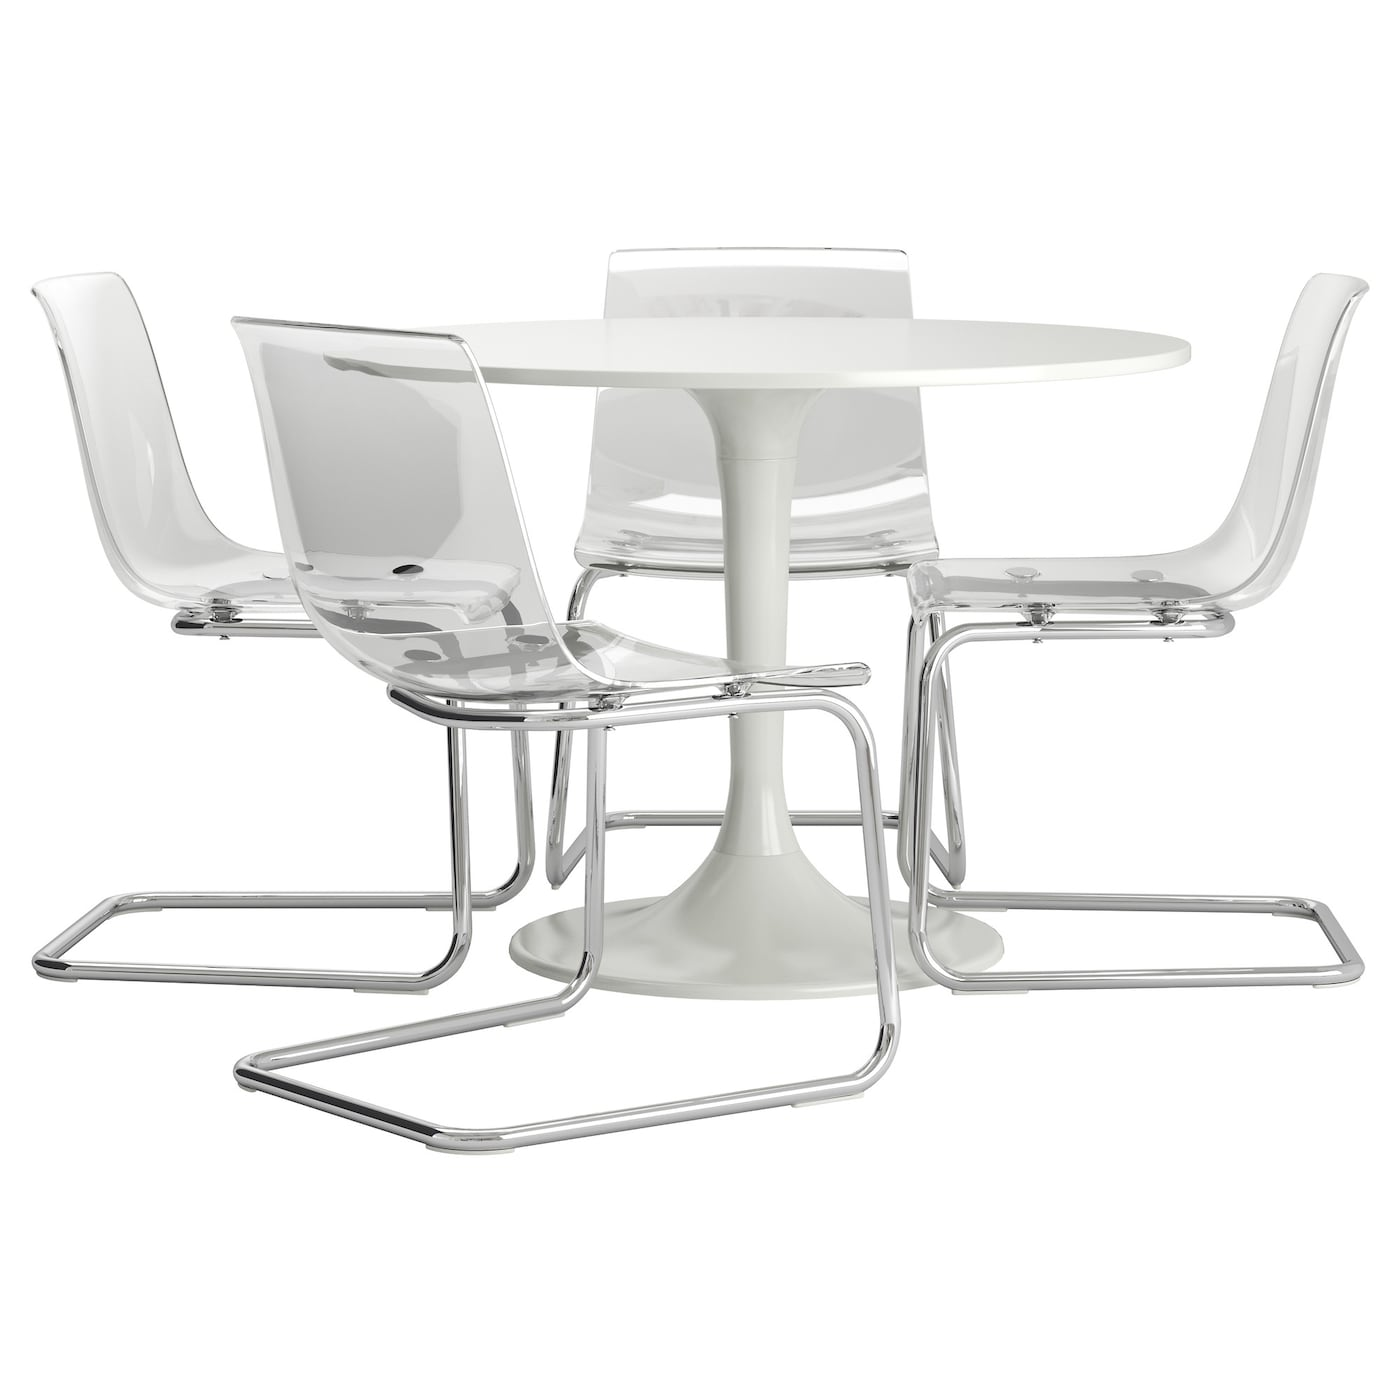 Docksta tobias table and 4 chairs white transparent 105 cm for Docksta dining table